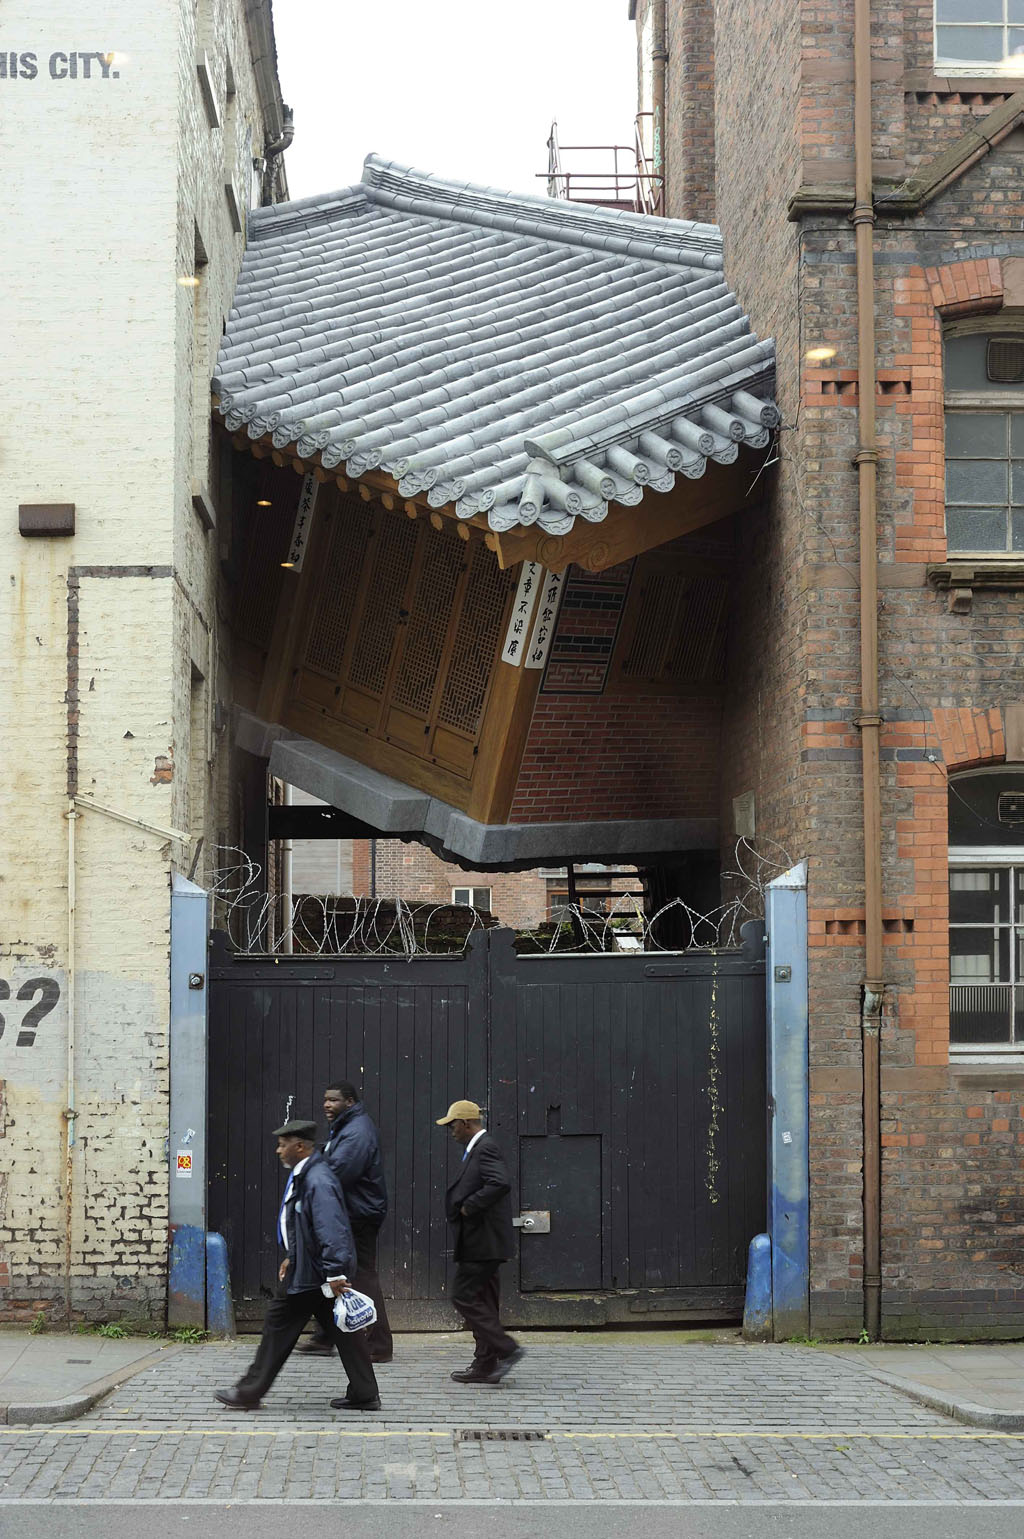 Do Ho Suh - Bridging Home - commissioned by Liverpool Biennial for Touched - 2010